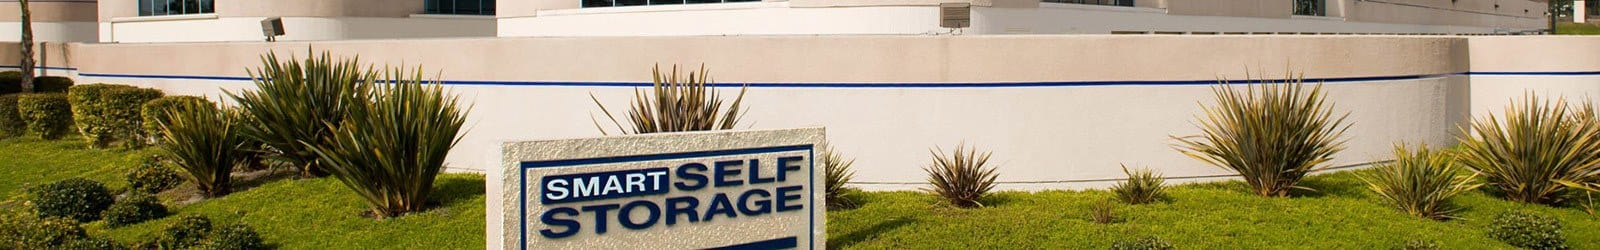 Come see us at Smart Self Storage of Eastlake for the best self storage in Chula Vista.